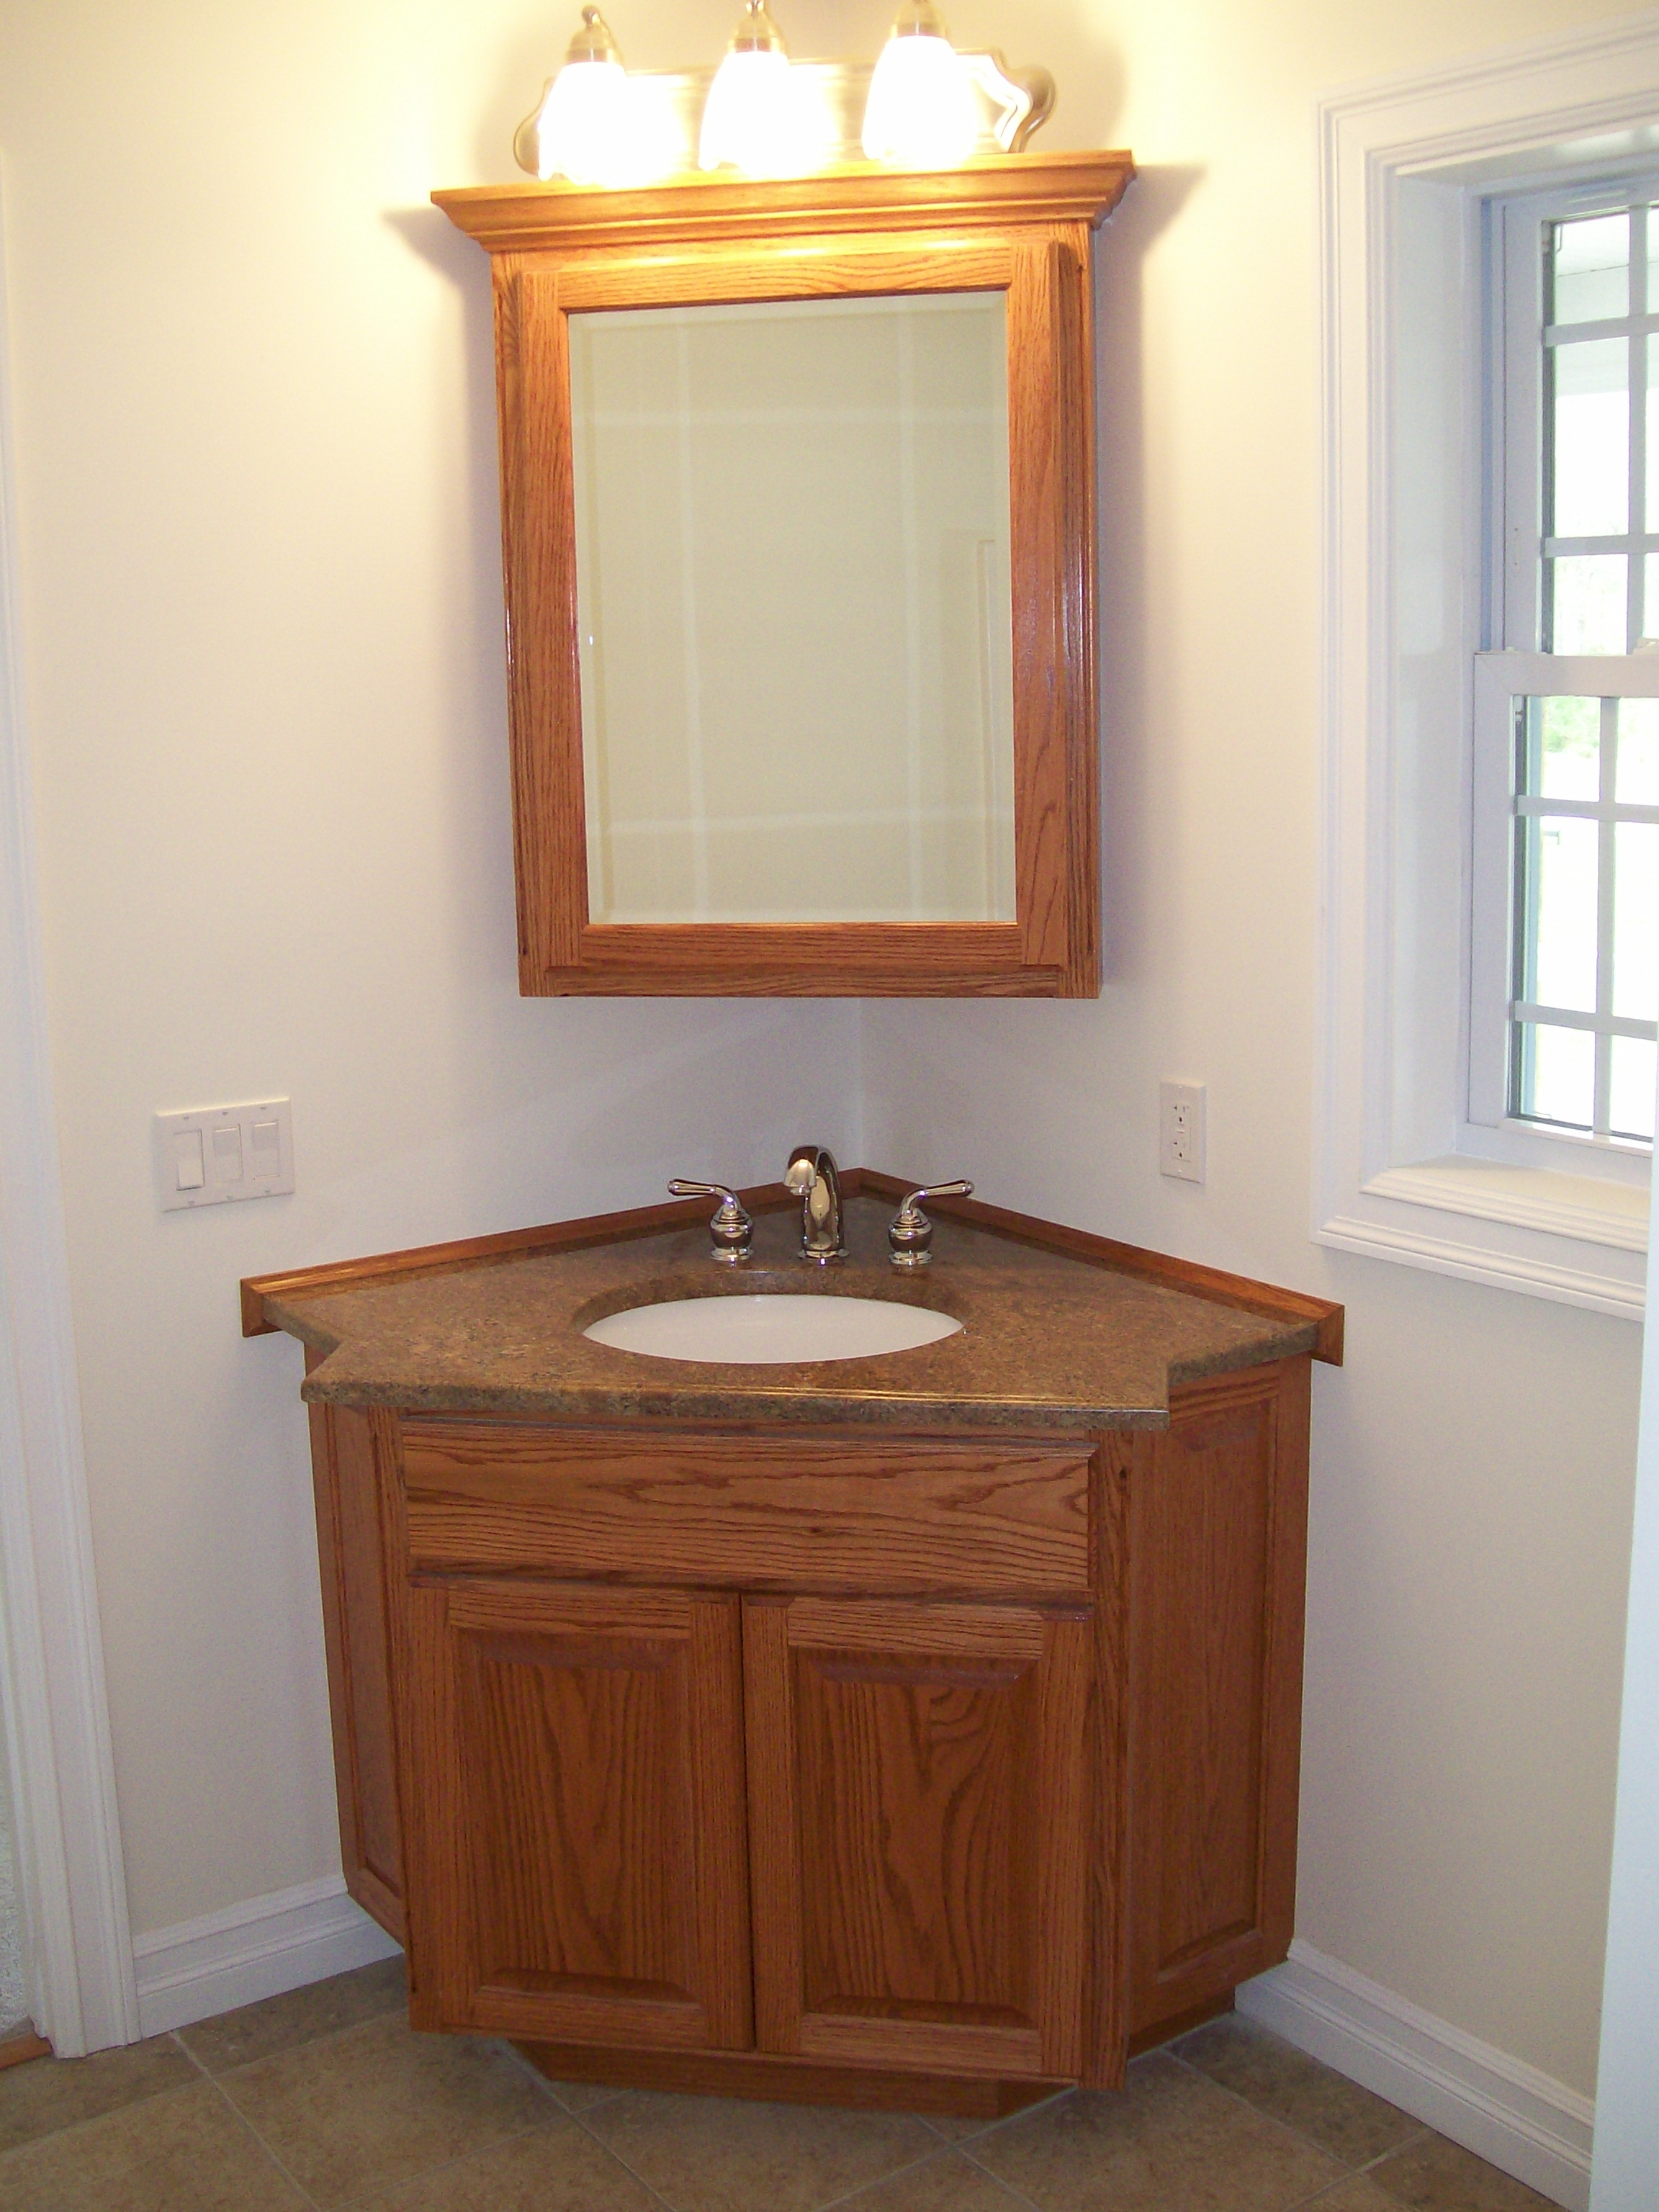 Corner Bathroom Sink Cabinet Lowes